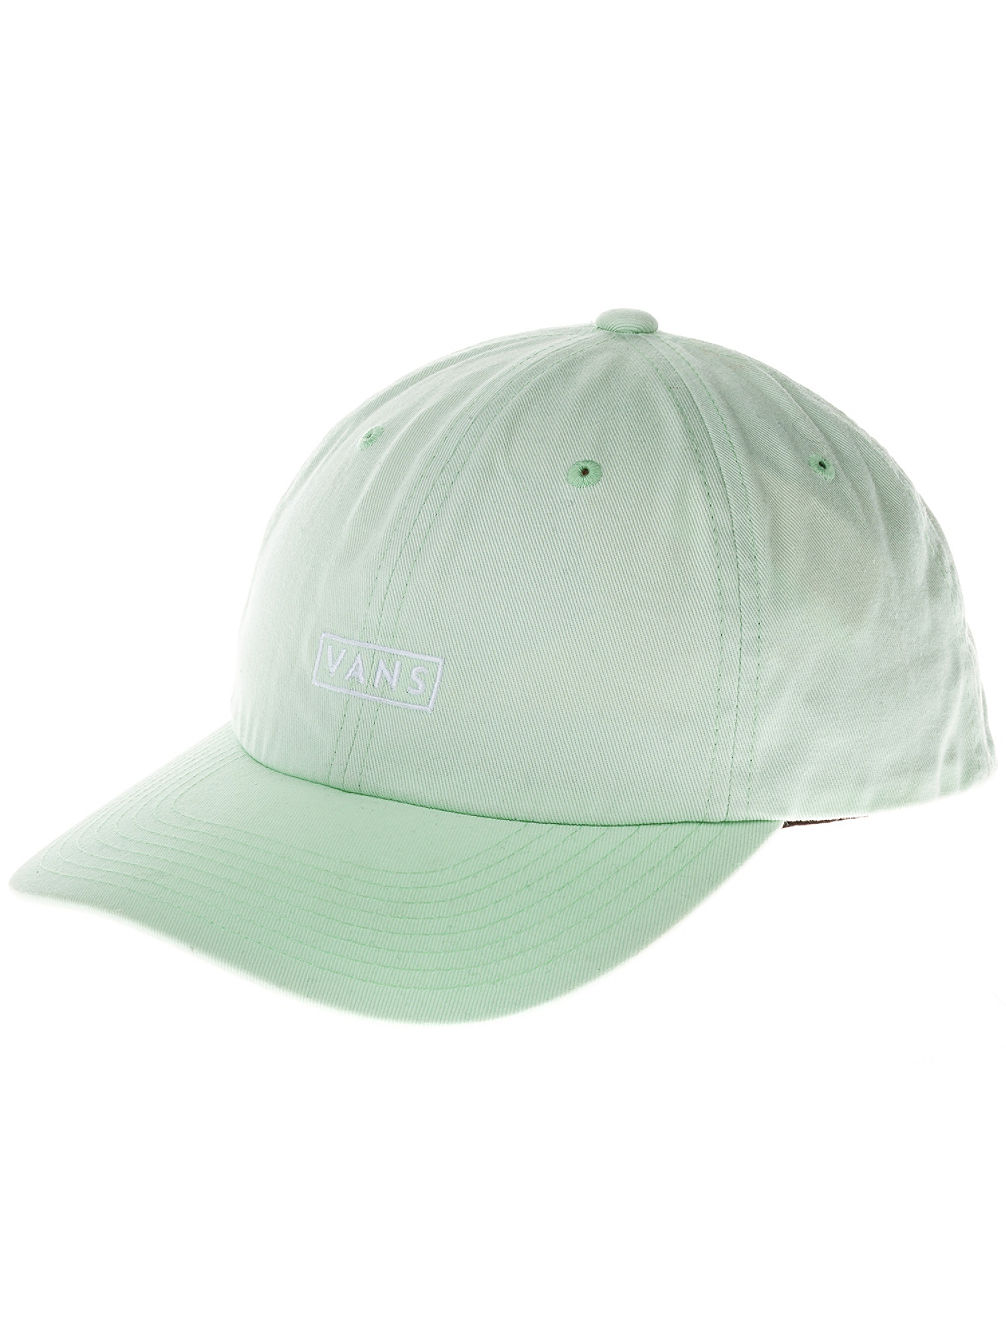 Buy Vans Curved Bill Jockey Cap online at blue-tomato.com 7118c6879e